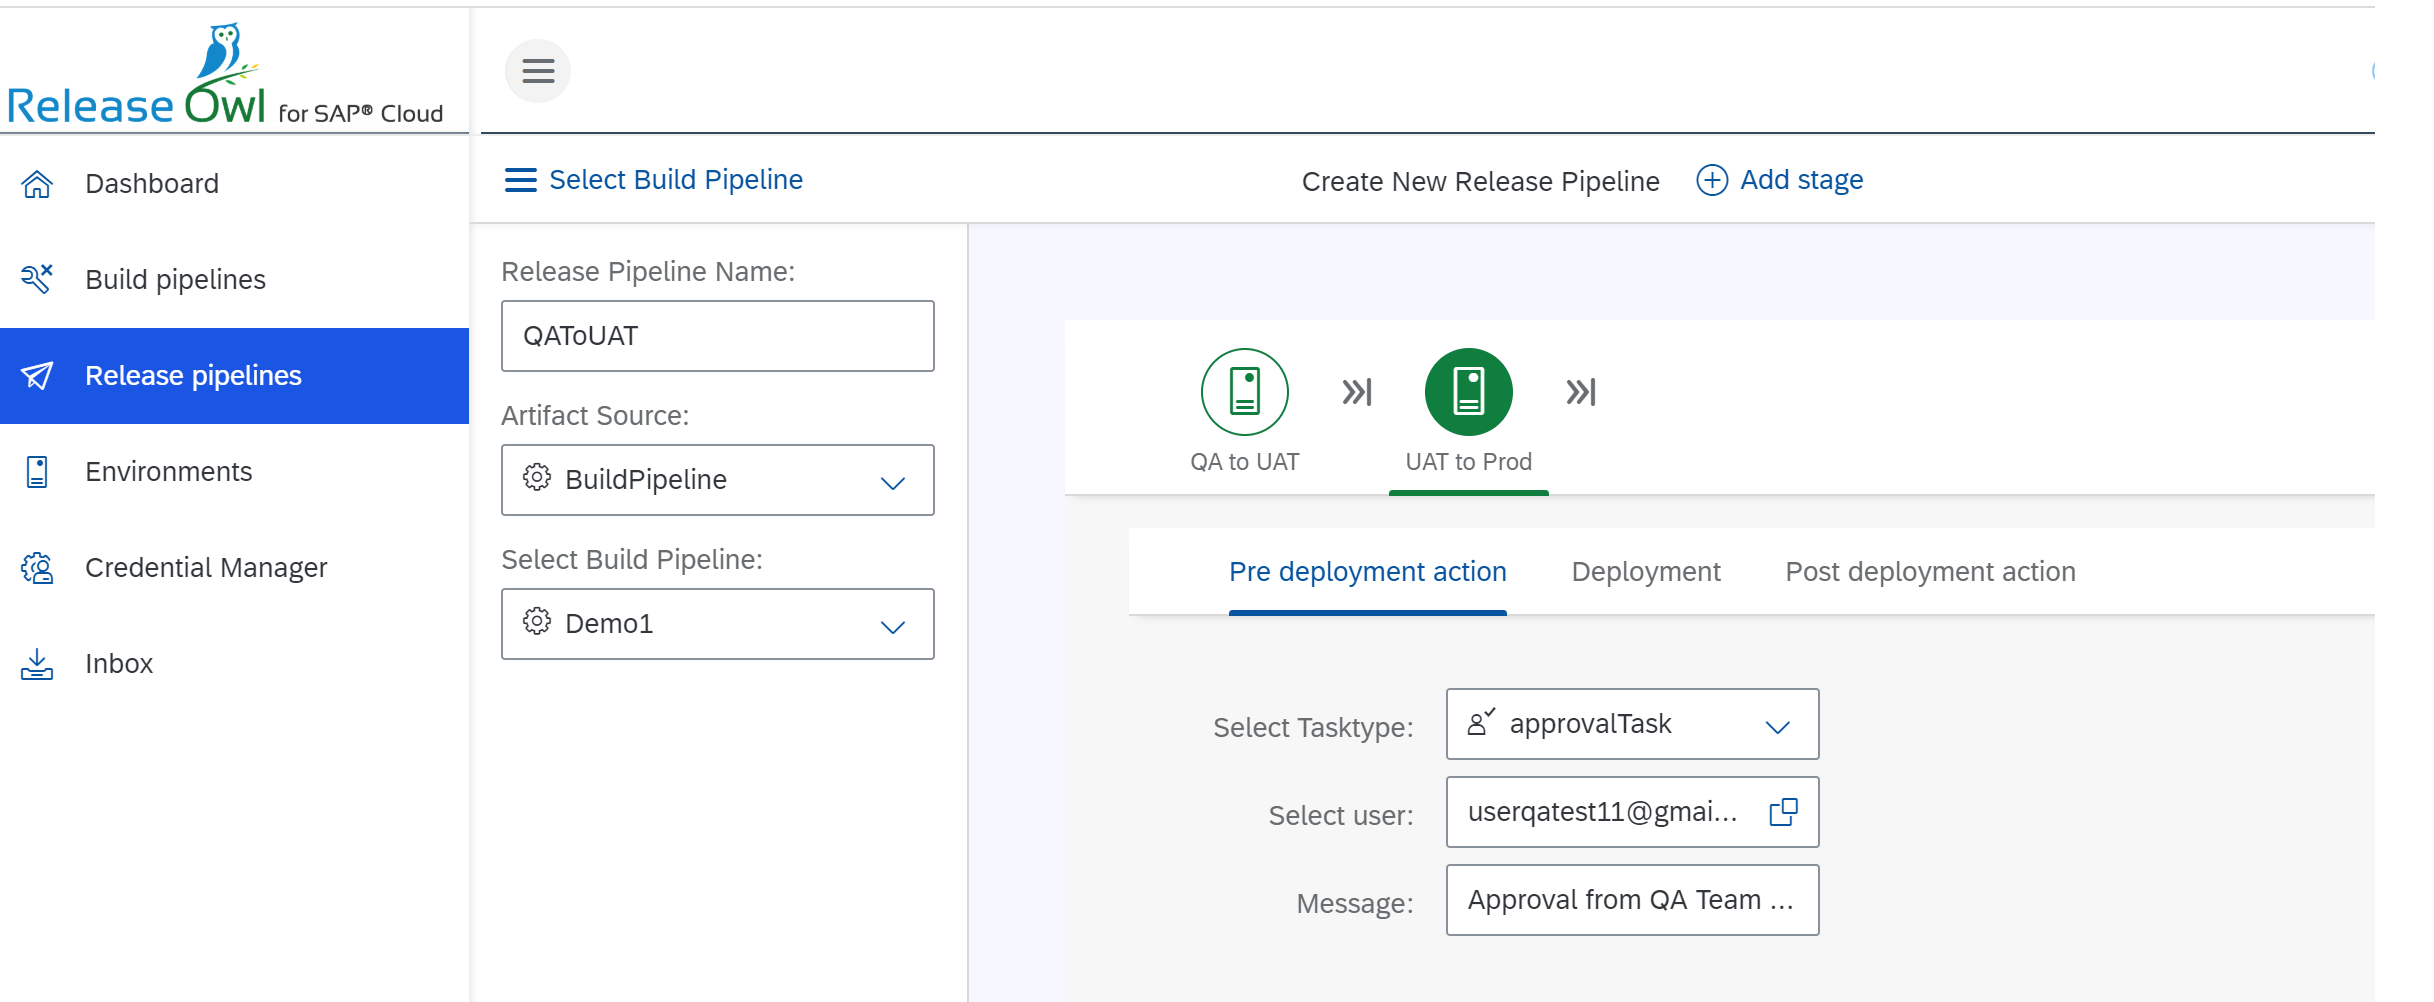 Multi stage deployment pipeline for SAP Cloud